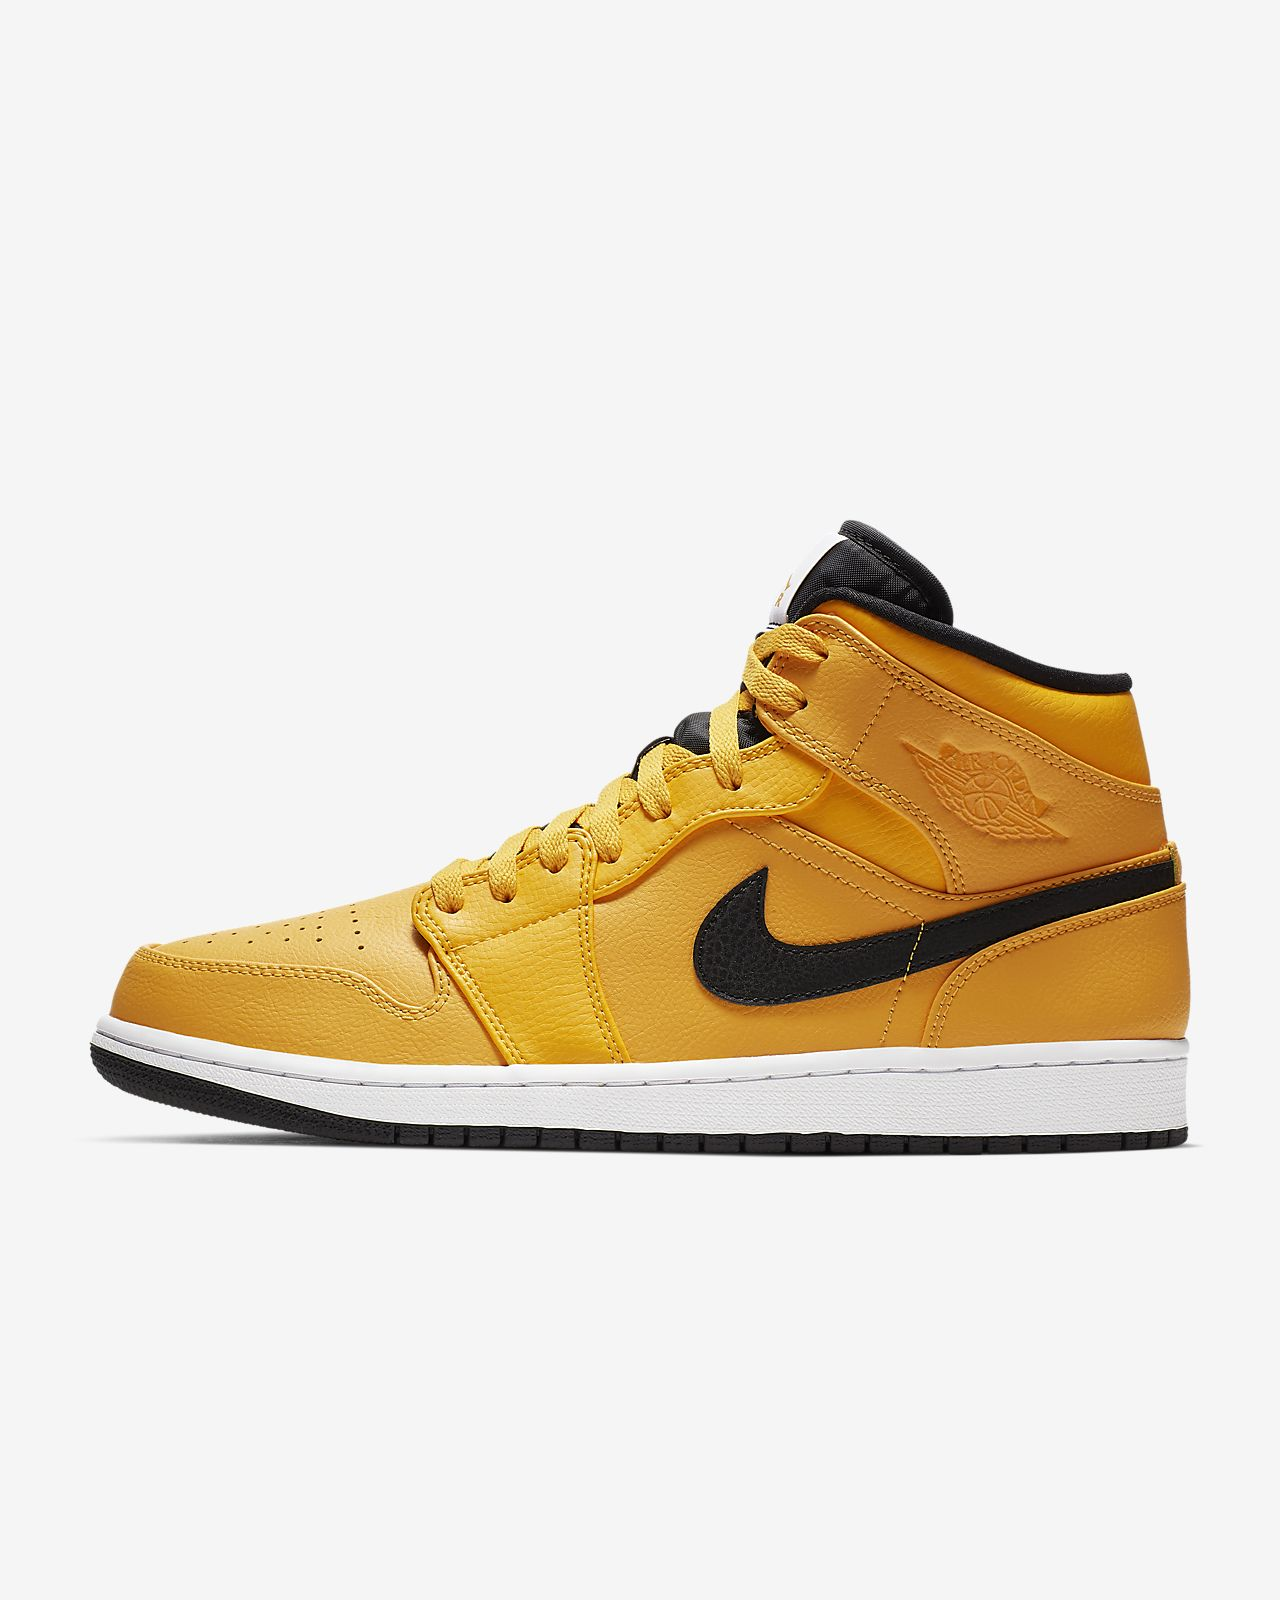 763c39793d18 Air Jordan 1 Mid Men s Shoe. Nike.com